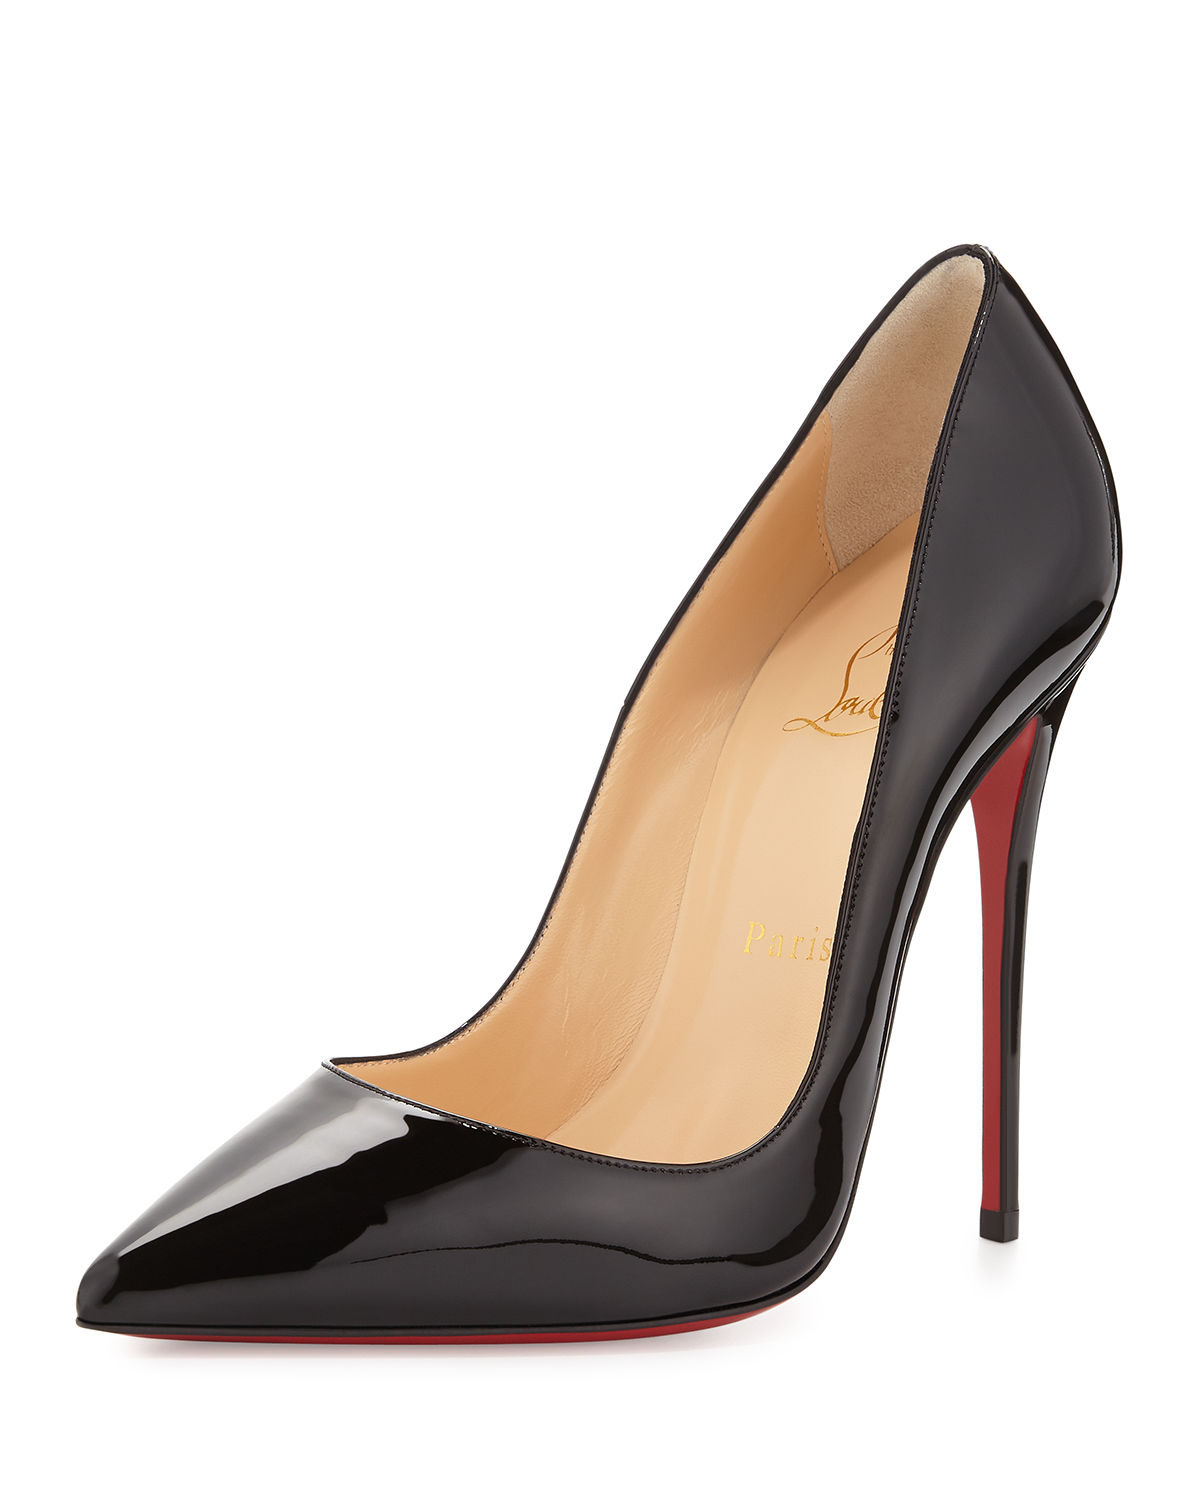 baa891218f37 Christian Louboutin So Kate Patent Red Sole Pump